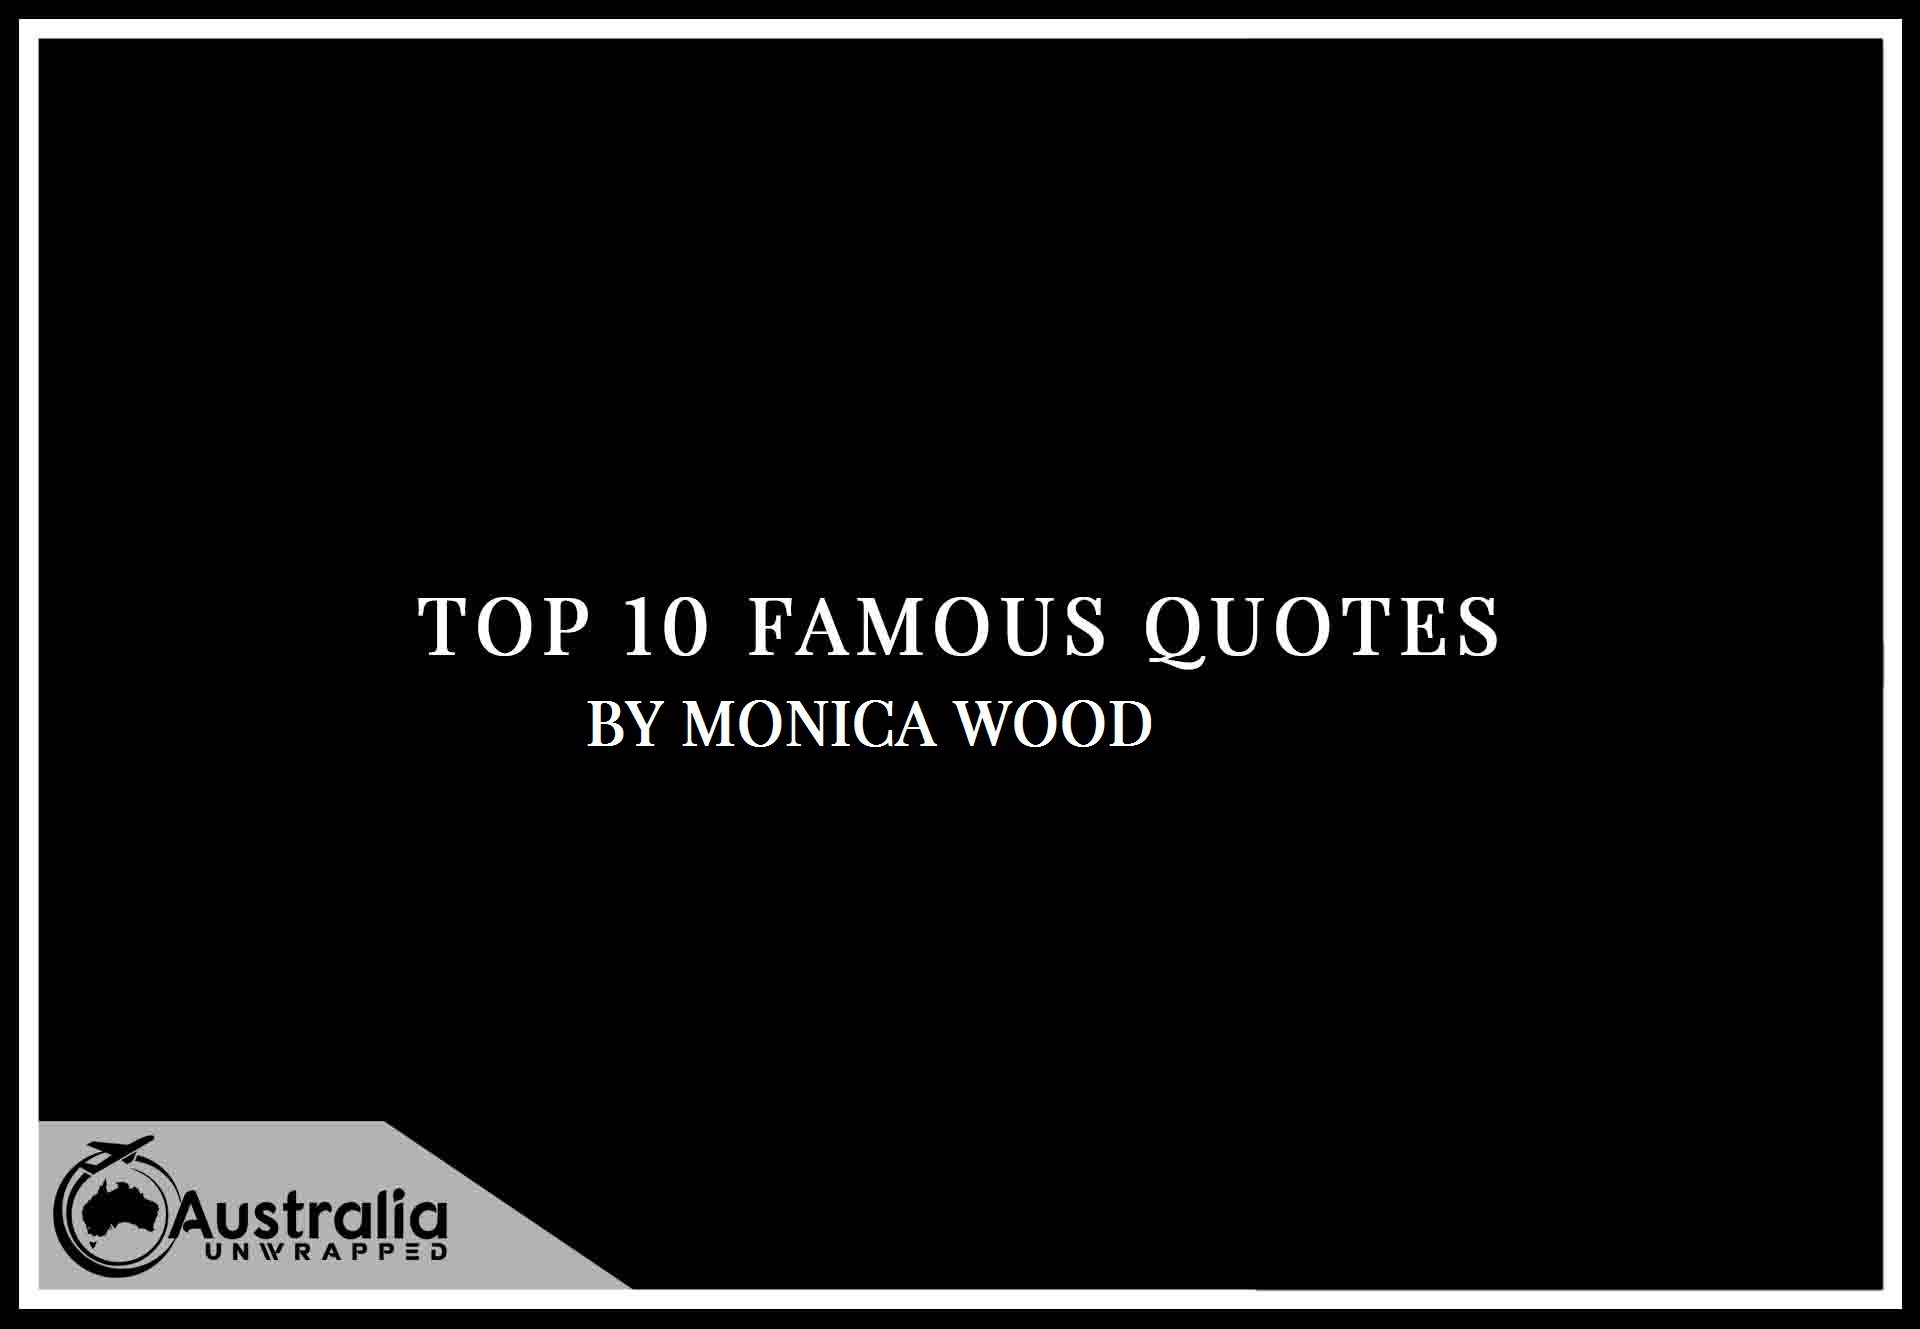 Monica Wood's Top 10 Popular and Famous Quotes